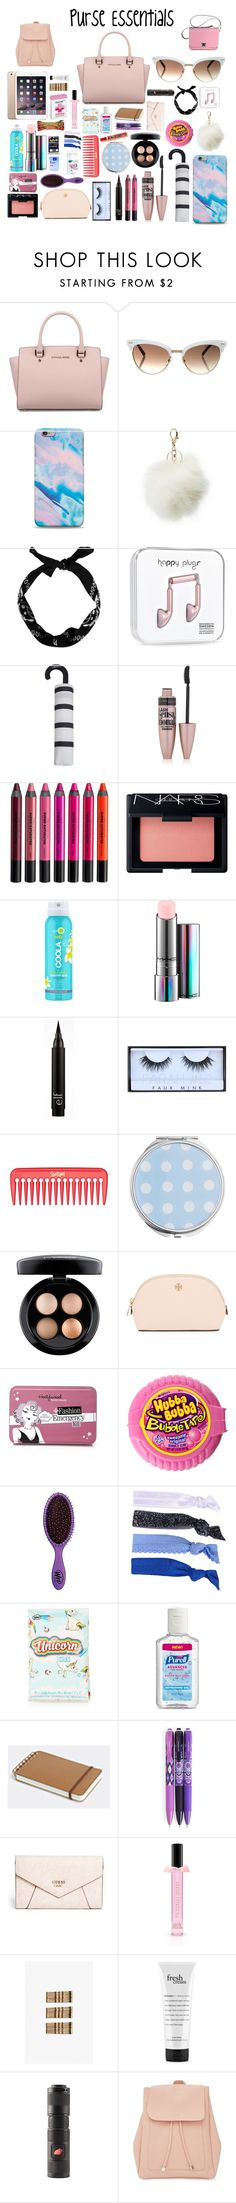 """""""Purse Essentials"""" by ale-needam on Polyvore featuring Michael Kors, Gucci, Charlotte Russe, New Look, MANGO, Maybelline, Urban Decay, NARS Cosmetics, COOLA Suncare and MAC Cosmetics"""